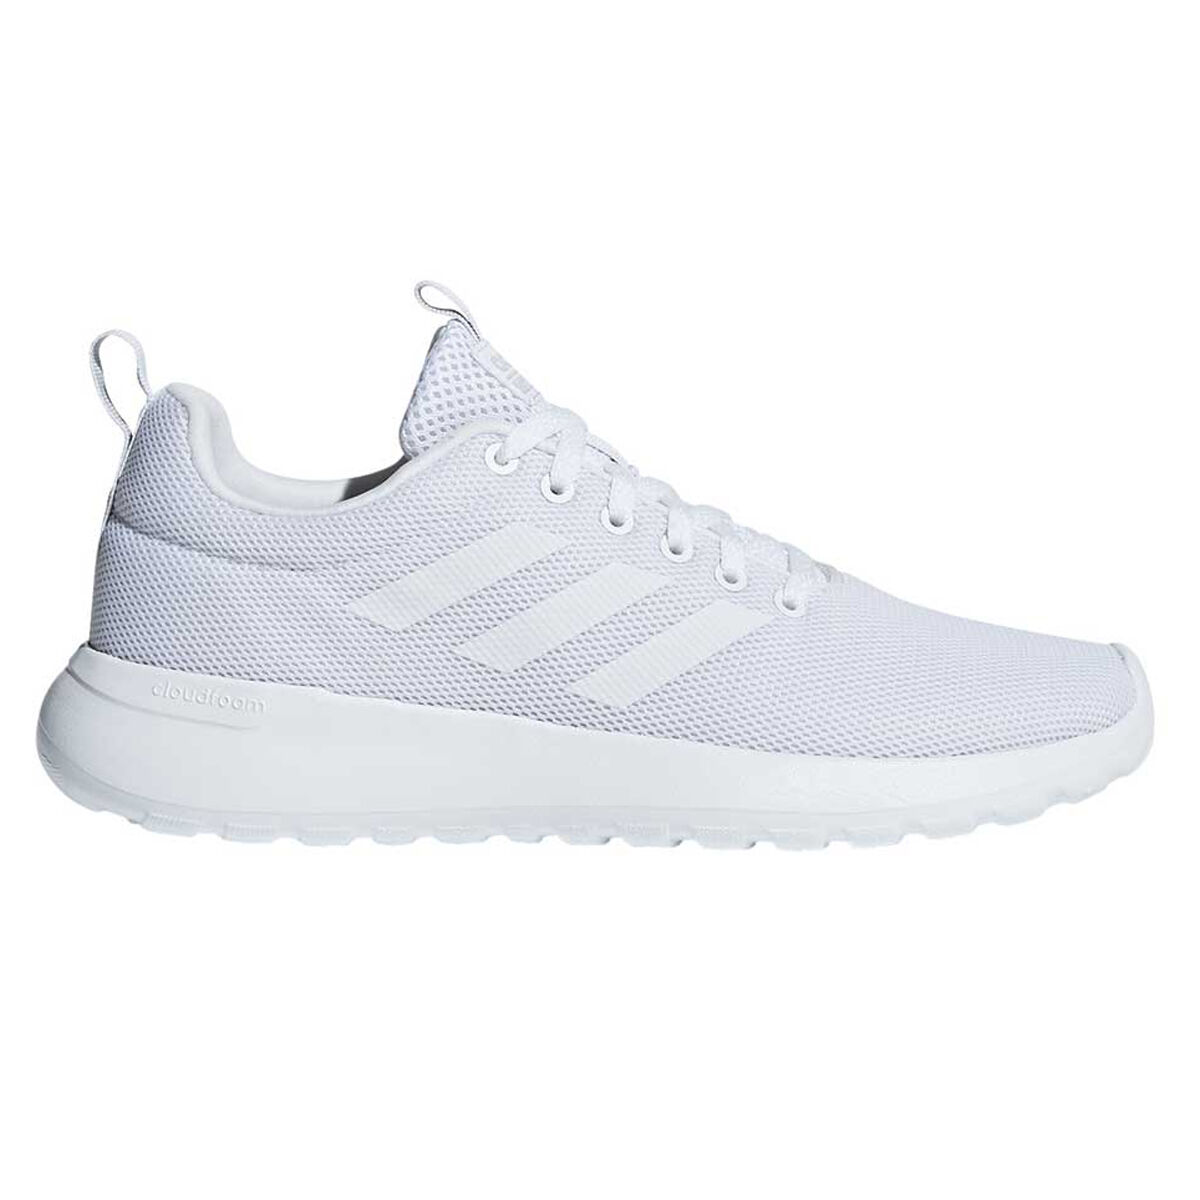 adidas Lite Racer CLN Womens Casual Shoes White White US 6